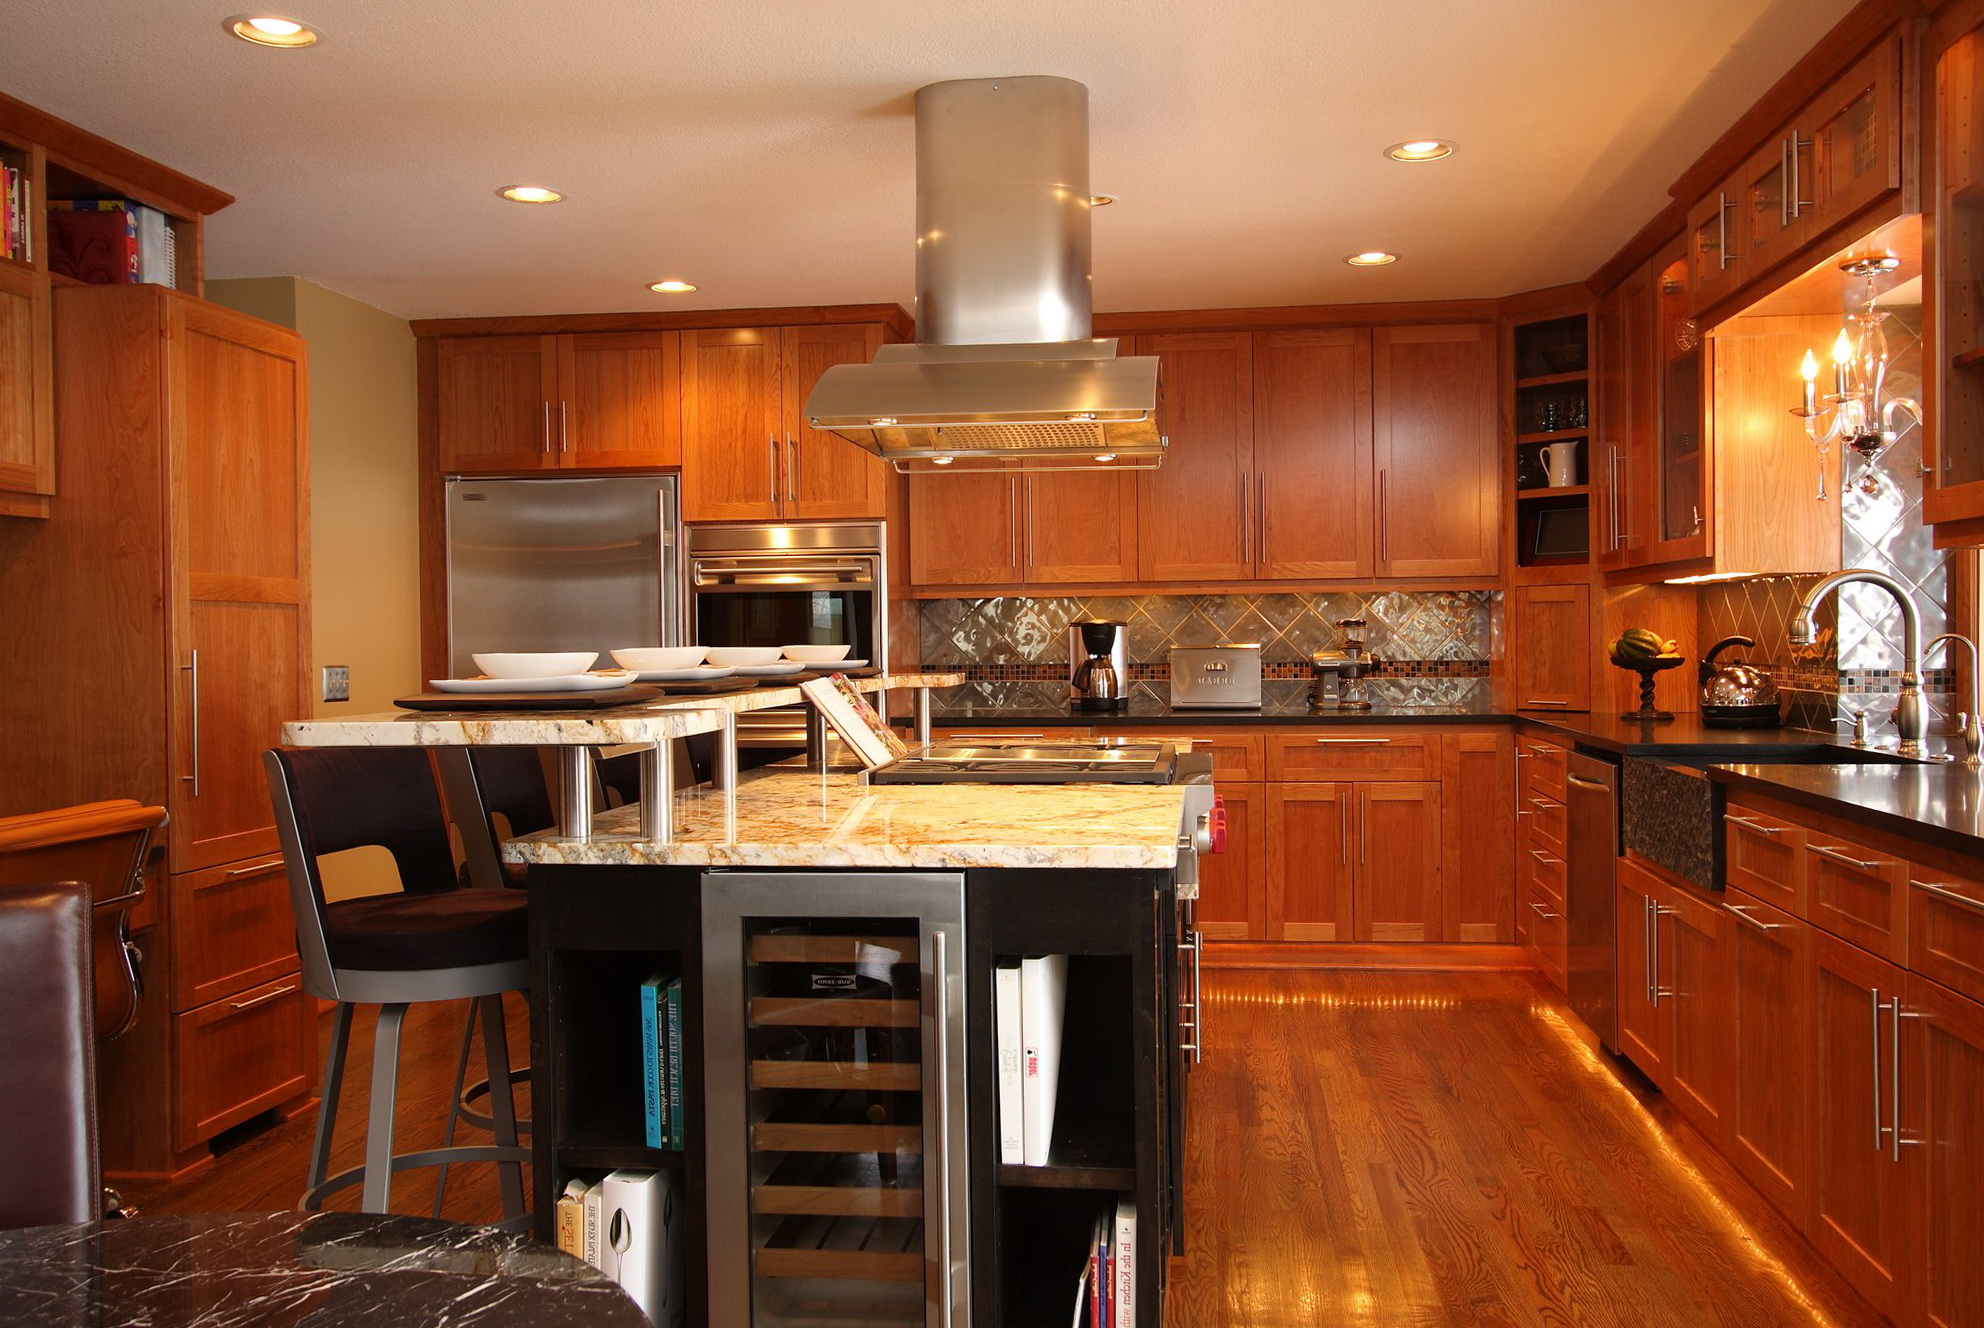 Pictures Of Custom Kitchen Cabinets